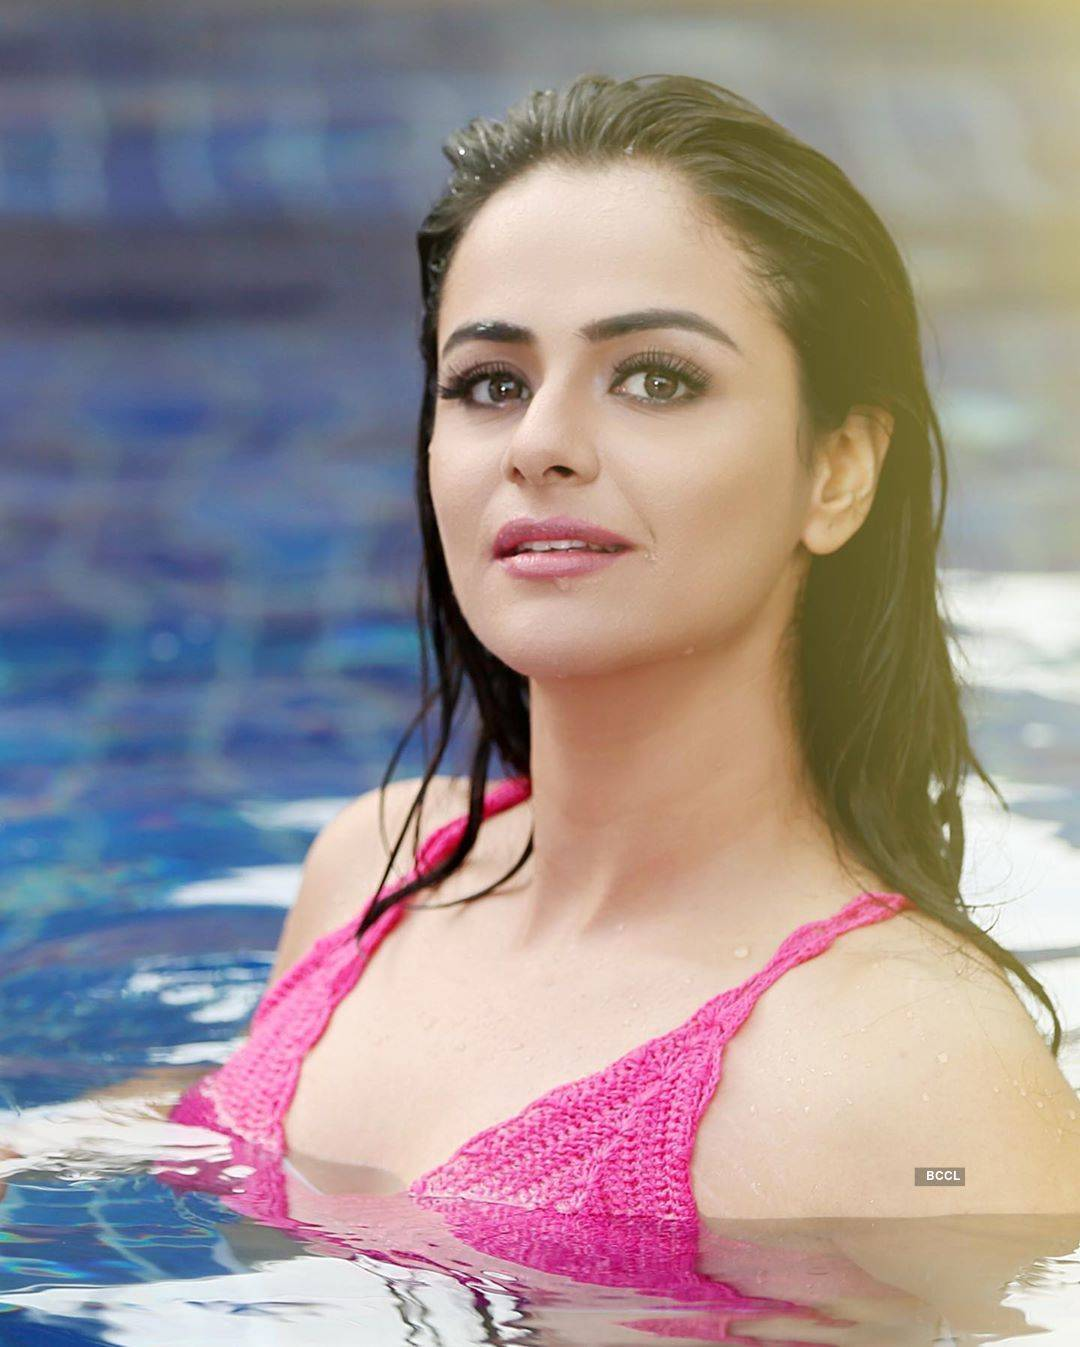 Indian basketball star Prachi Tehlan ups her glam game with these stunning photos during lockdown